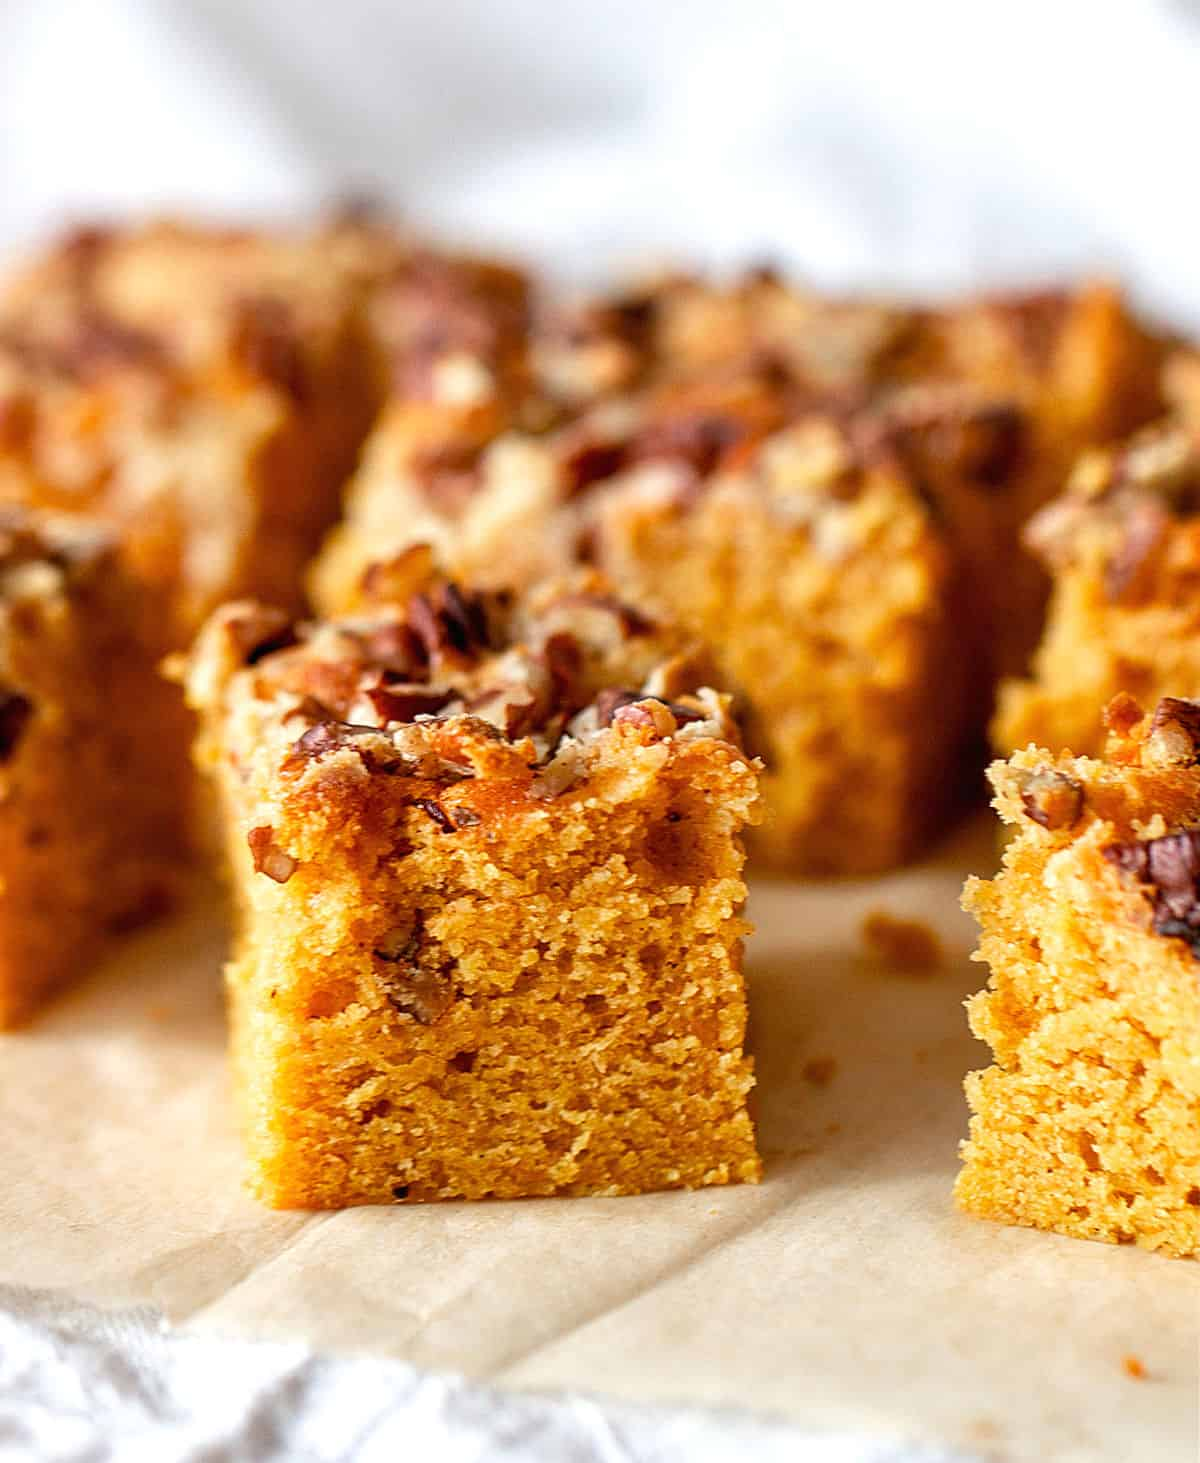 On brownish parchment paper, squares of pecan topped pumpkin sheet cake